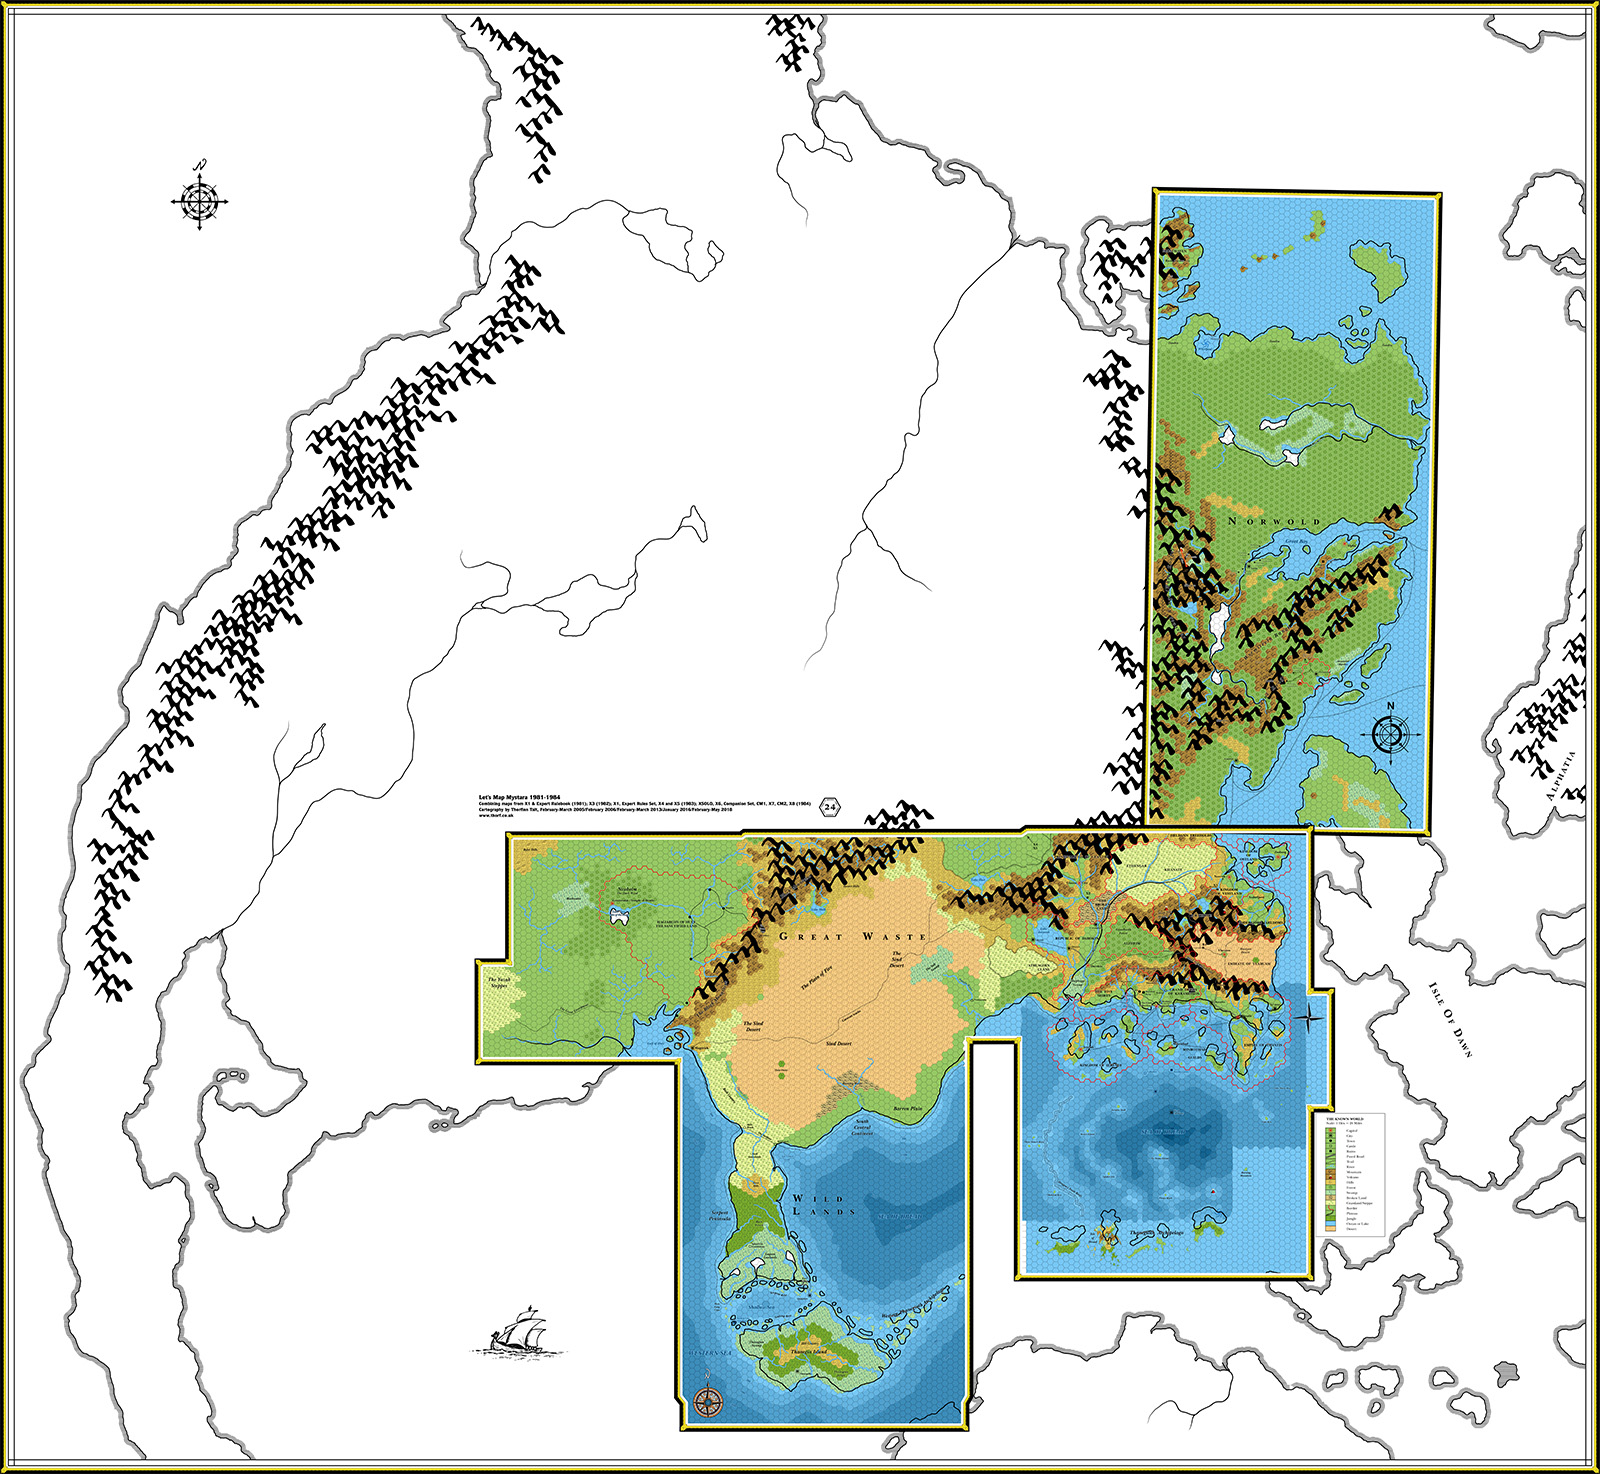 Thorfinn Tait Cartography – Mapping fantastic worlds with real world ...